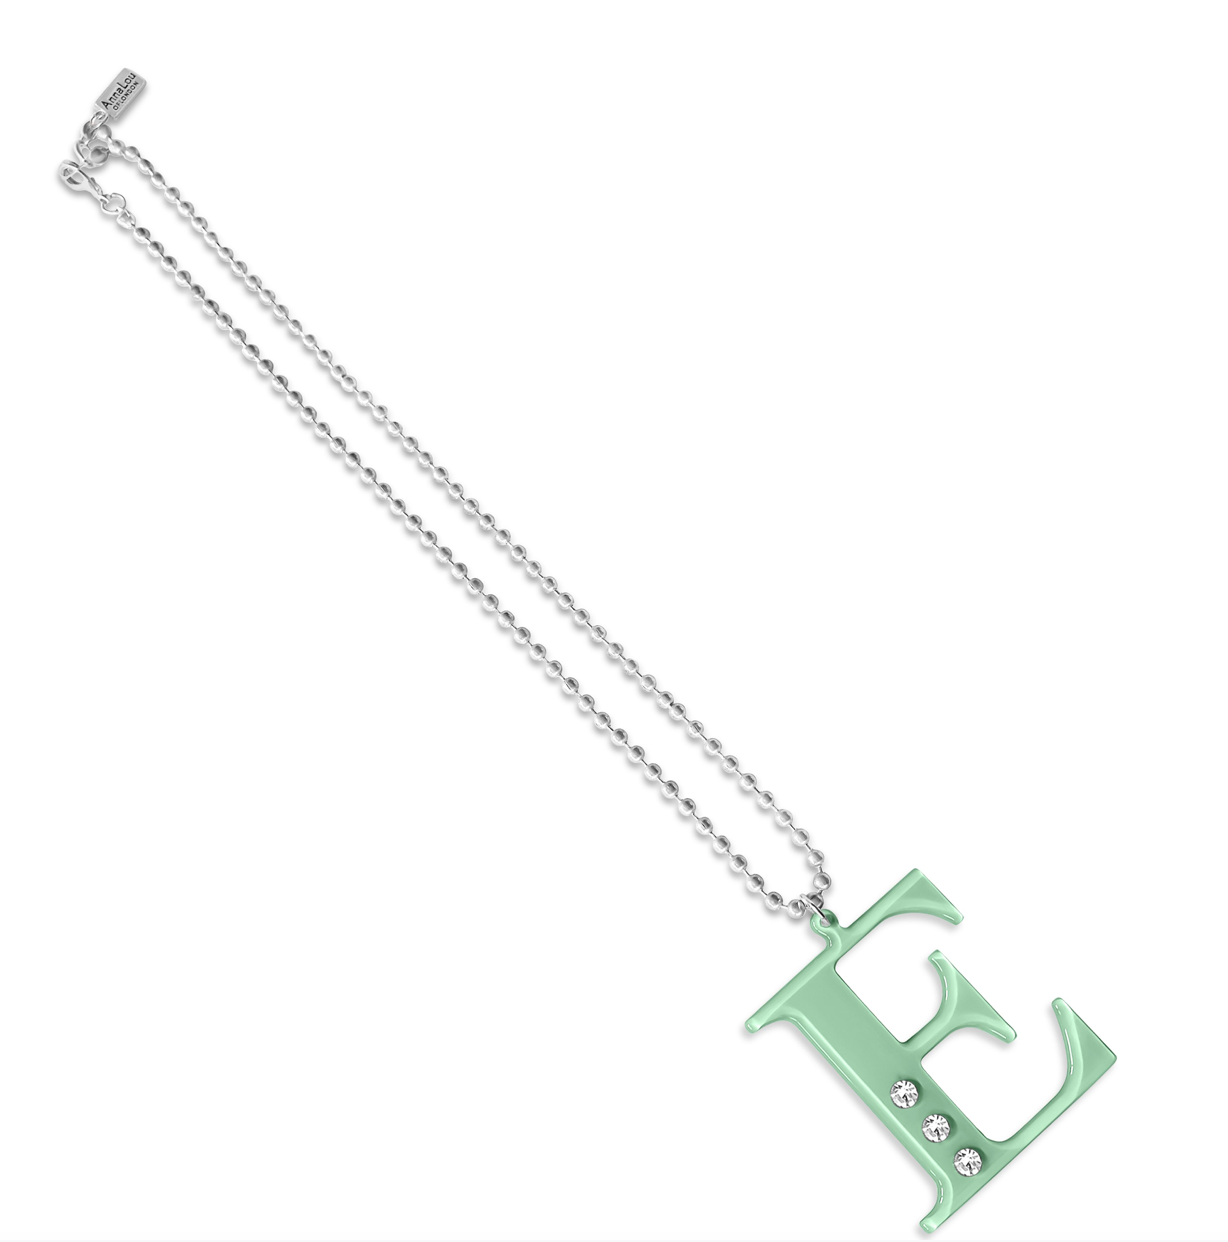 E Lucite Crystal Necklace